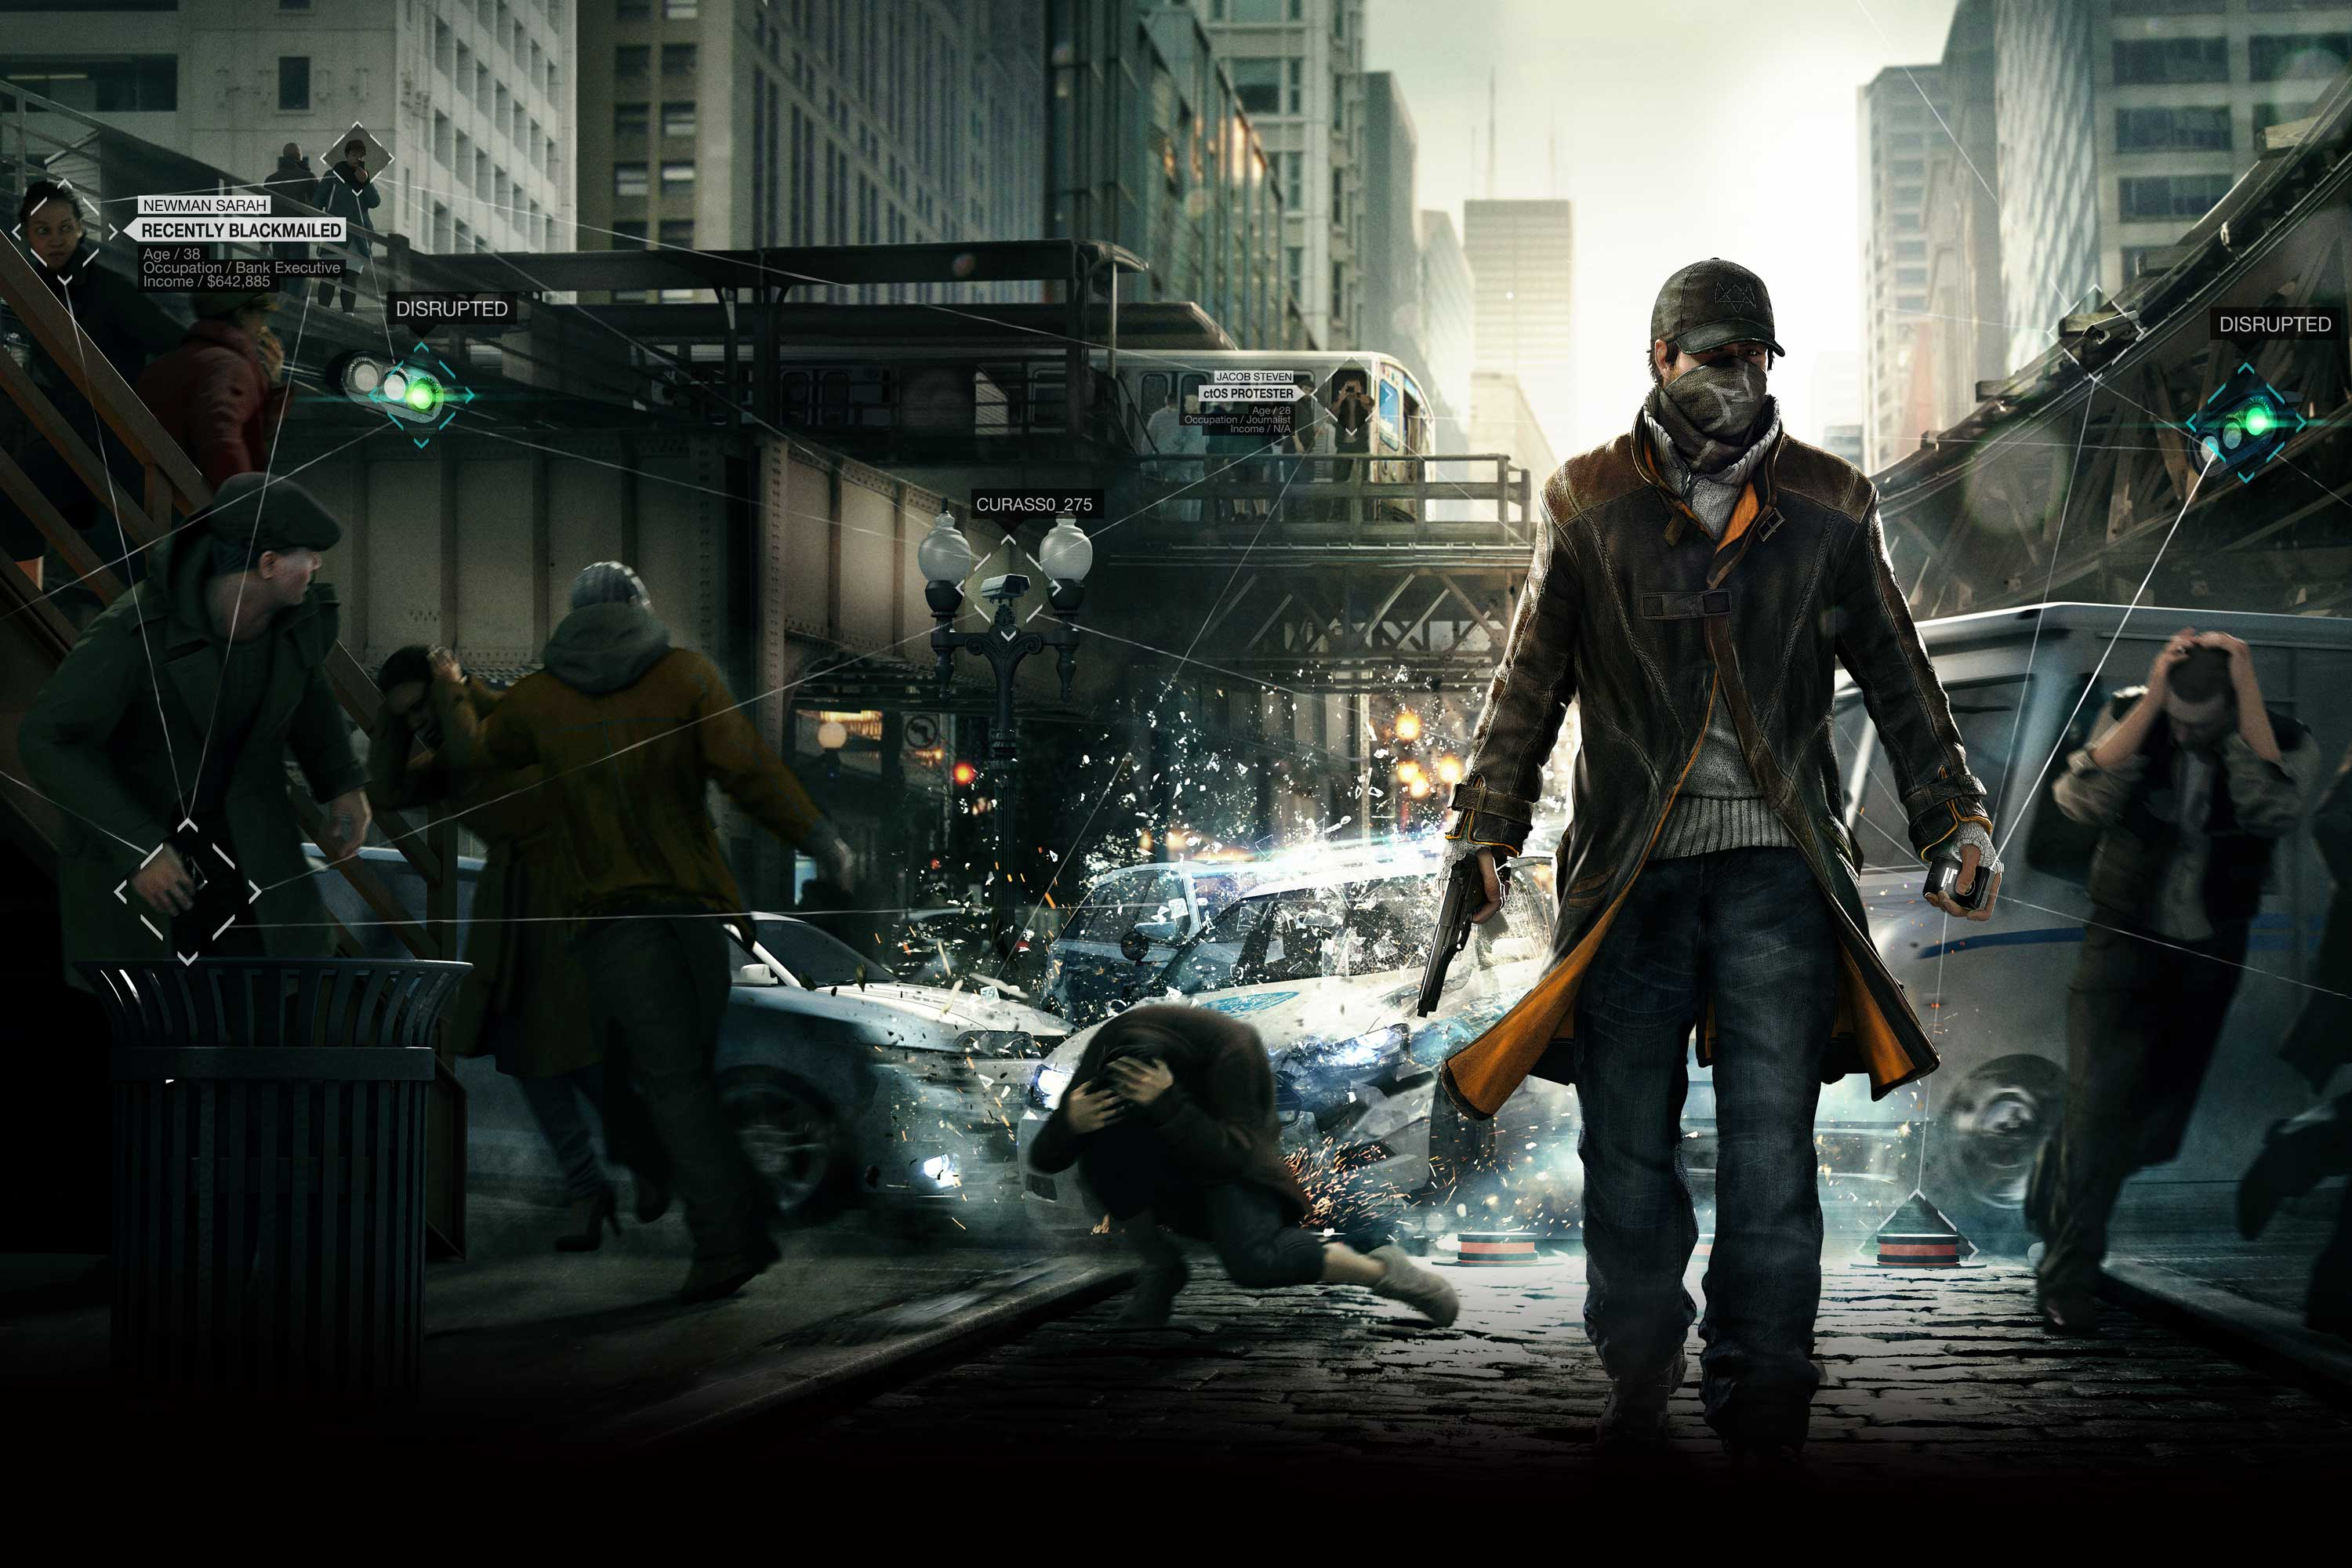 http://static9.cdn.ubi.com/resource/pt-BR/game/watchdogs/watchdogs/%5BHome%20Page%20Carousel%5D%20Aiden_NewKeyArt_99828.jpg